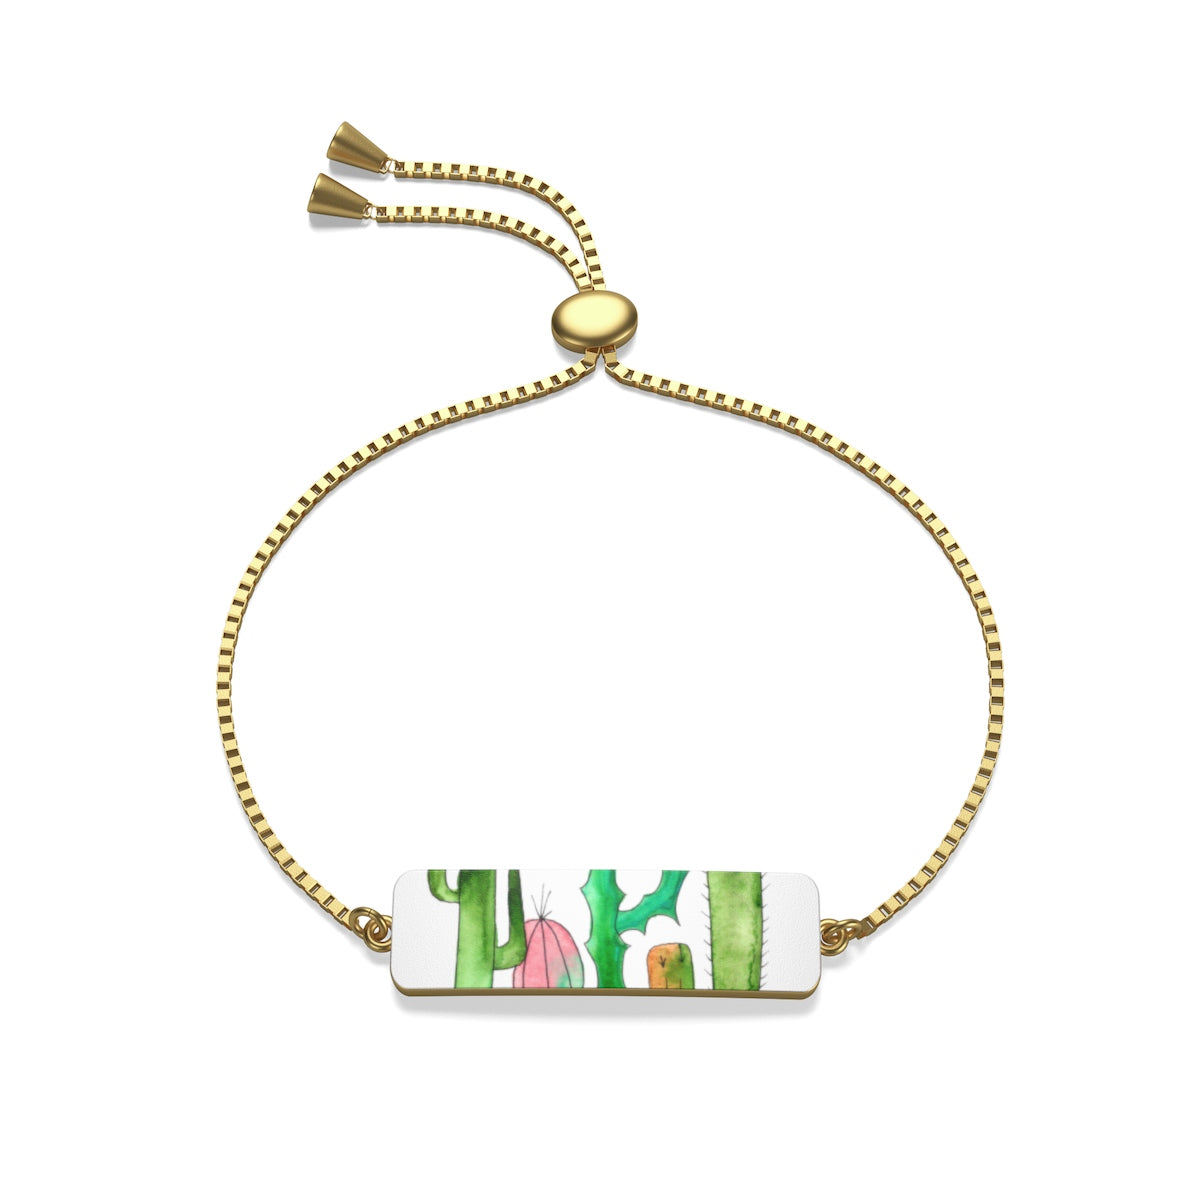 Cactus Family H Box Chain Bracelet, Accessories - Gravitational Pull Art